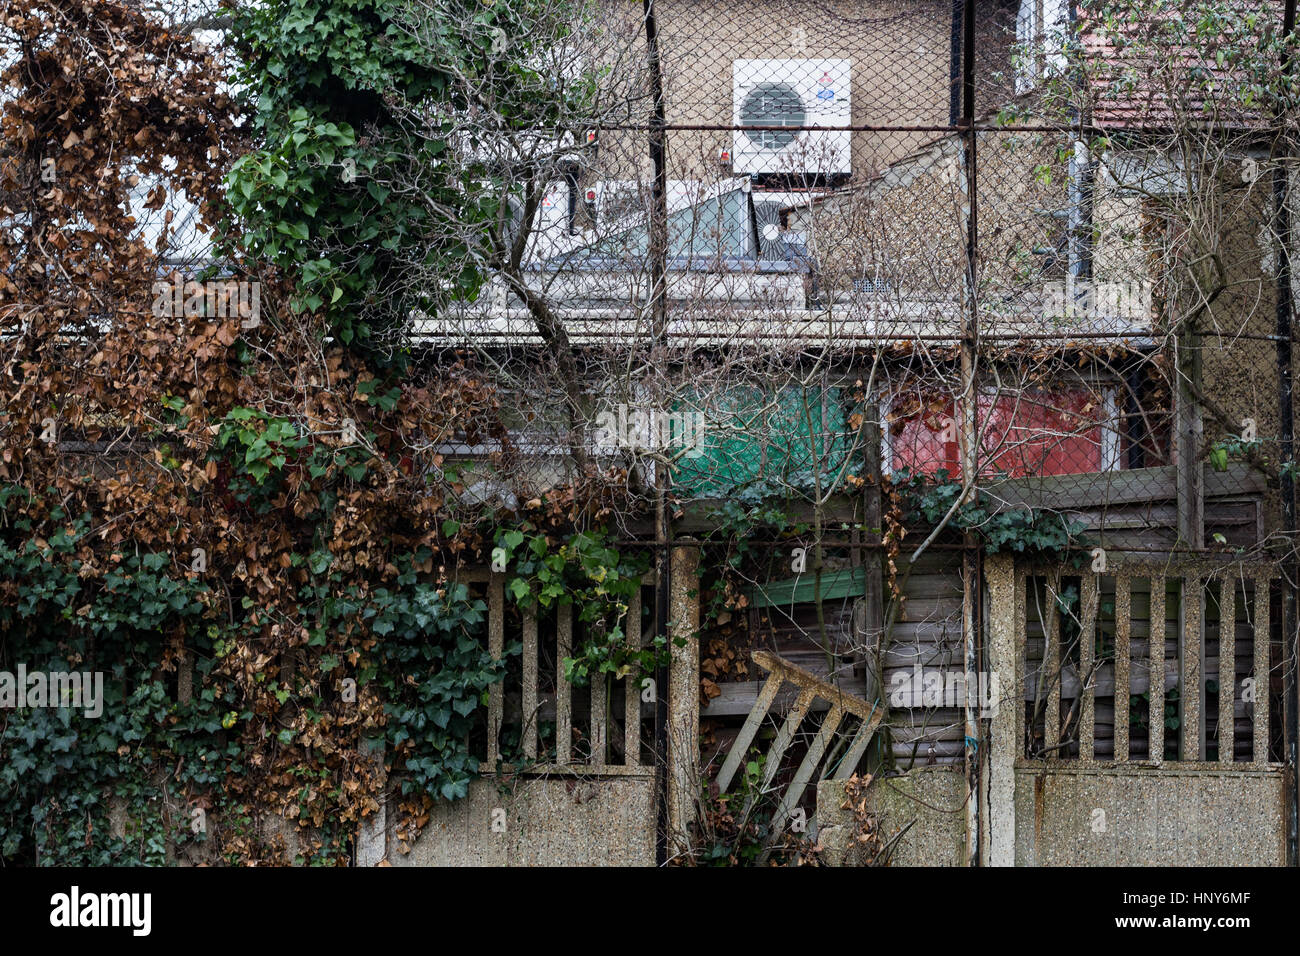 Dilapidated wall and garden in Clapham, South London, England,UK. - Stock Image